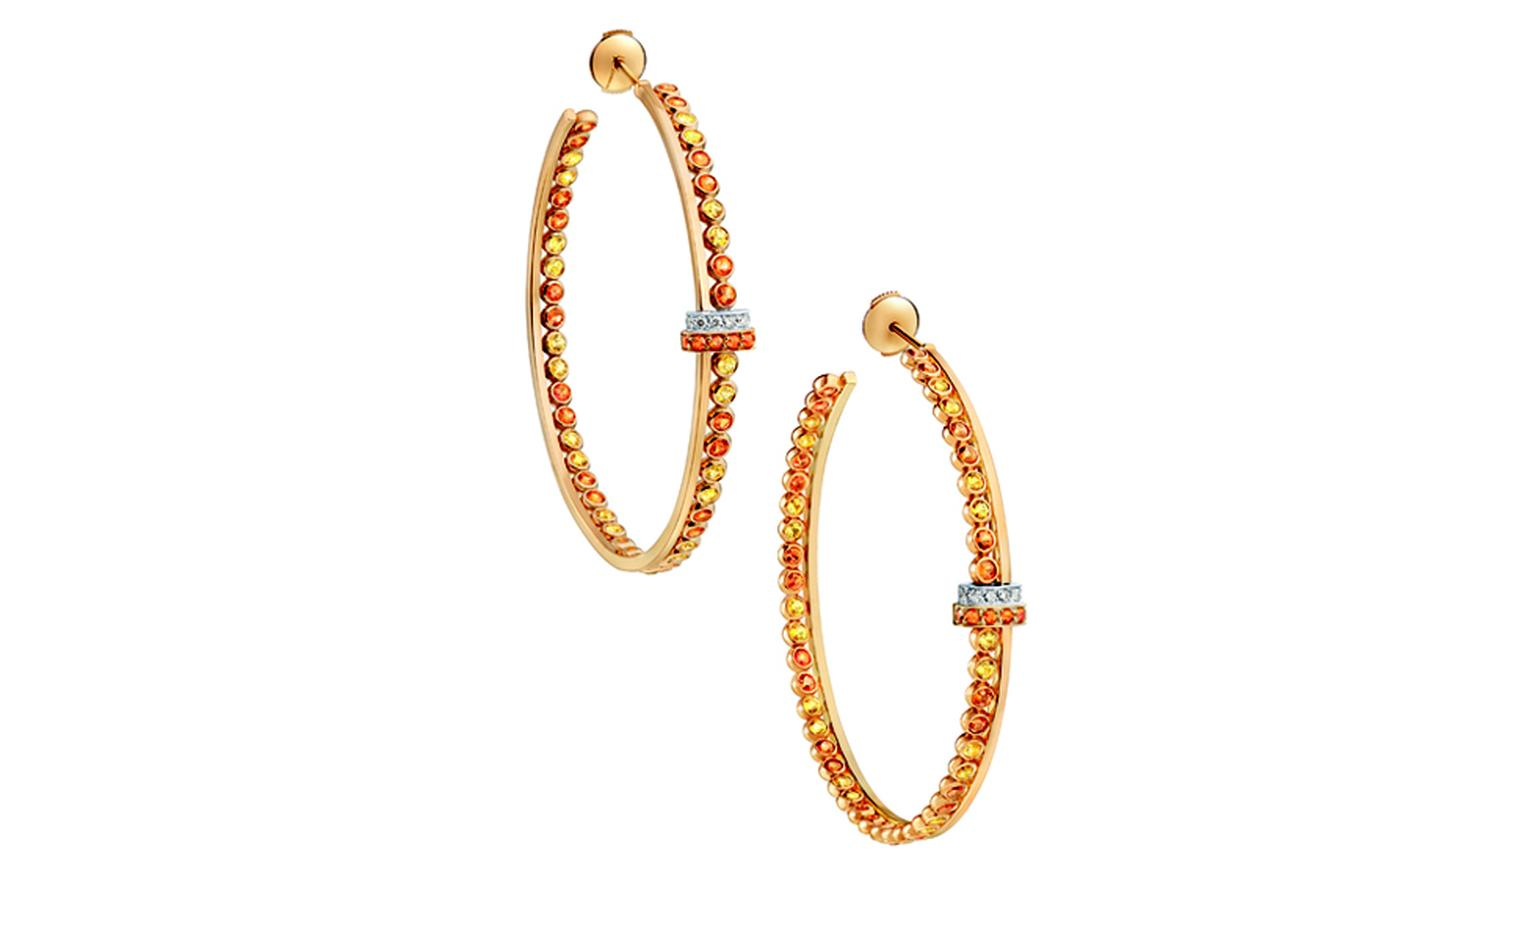 LOUIS VUITTON, Ornament Tribal Hoops, yellow gold, yellow sapphires, spessartite garnets and diamonds. £9300